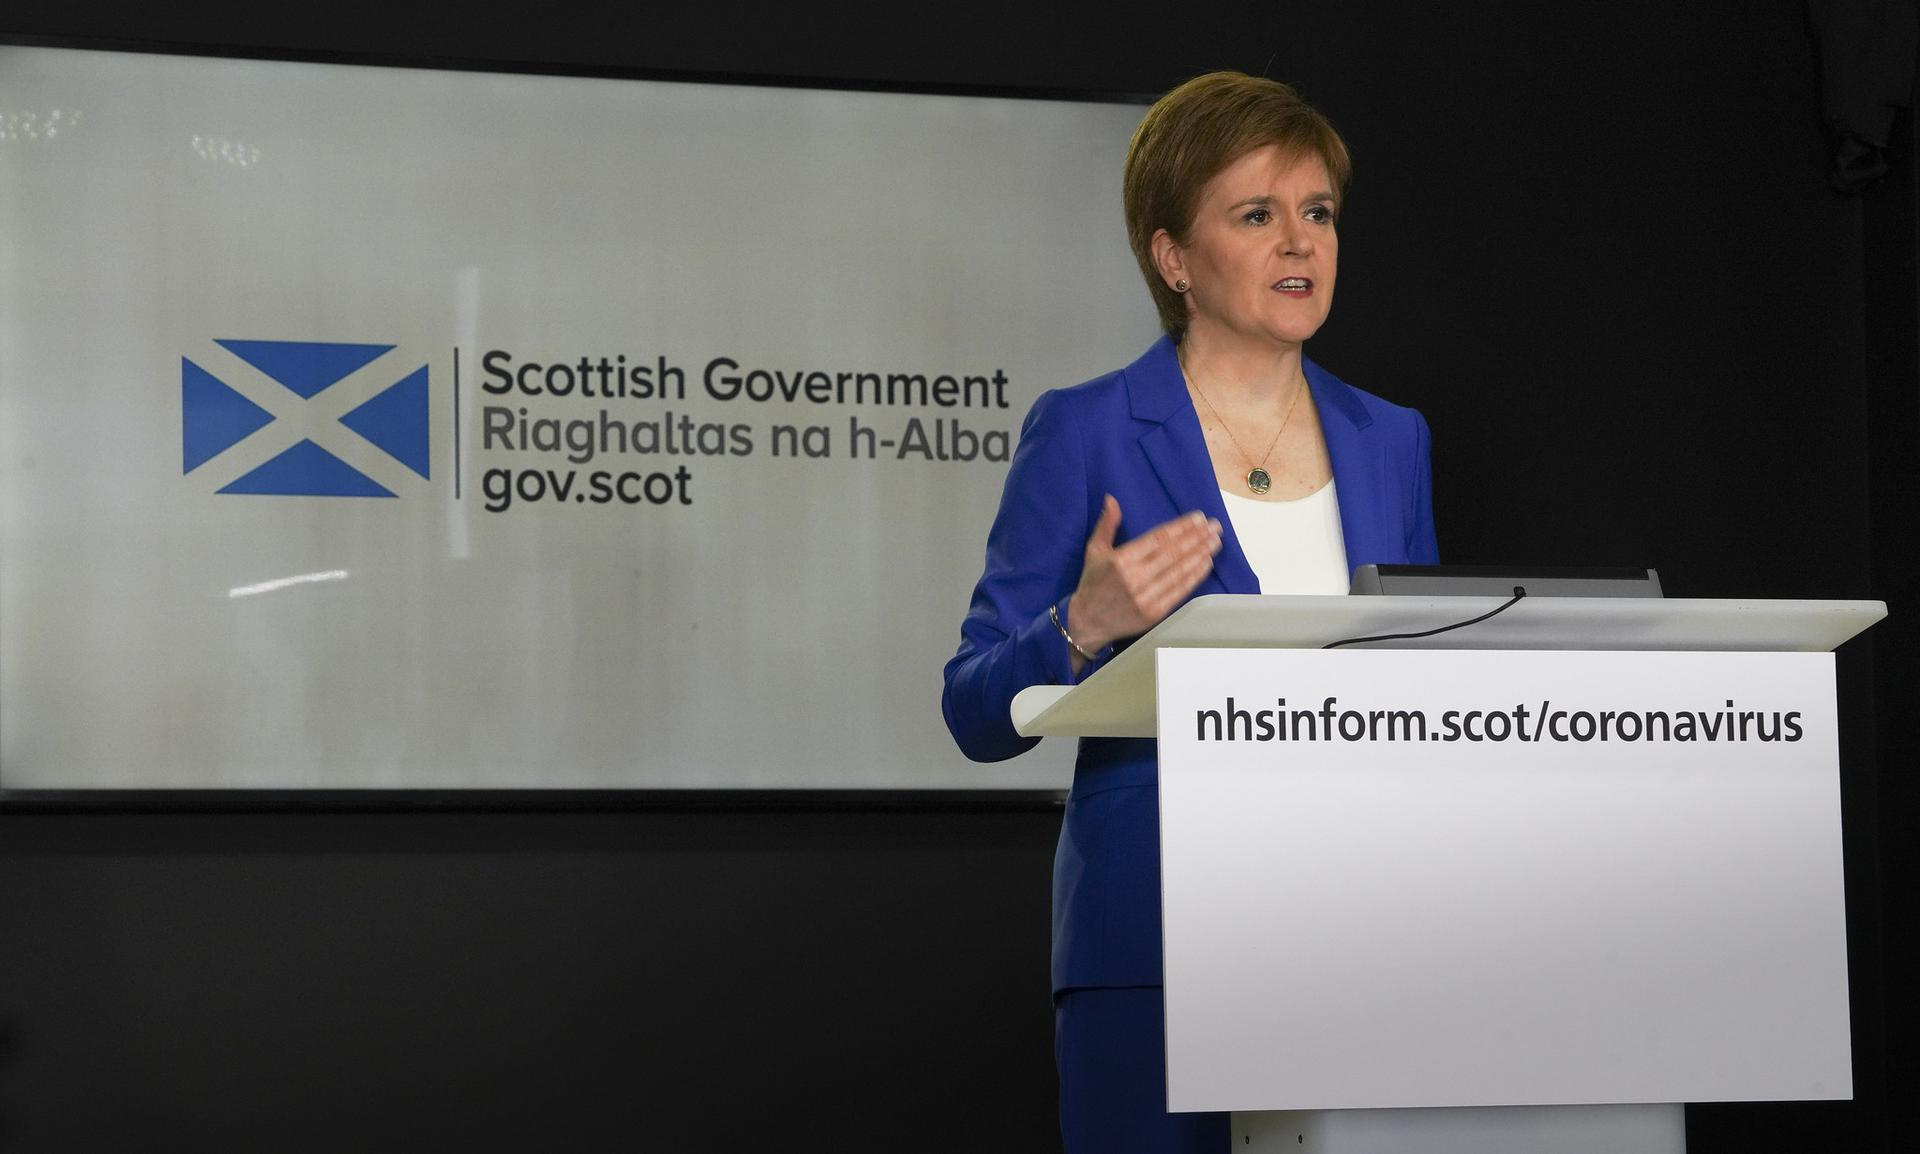 Image of Nicola Sturgeon - Scottish First Minister